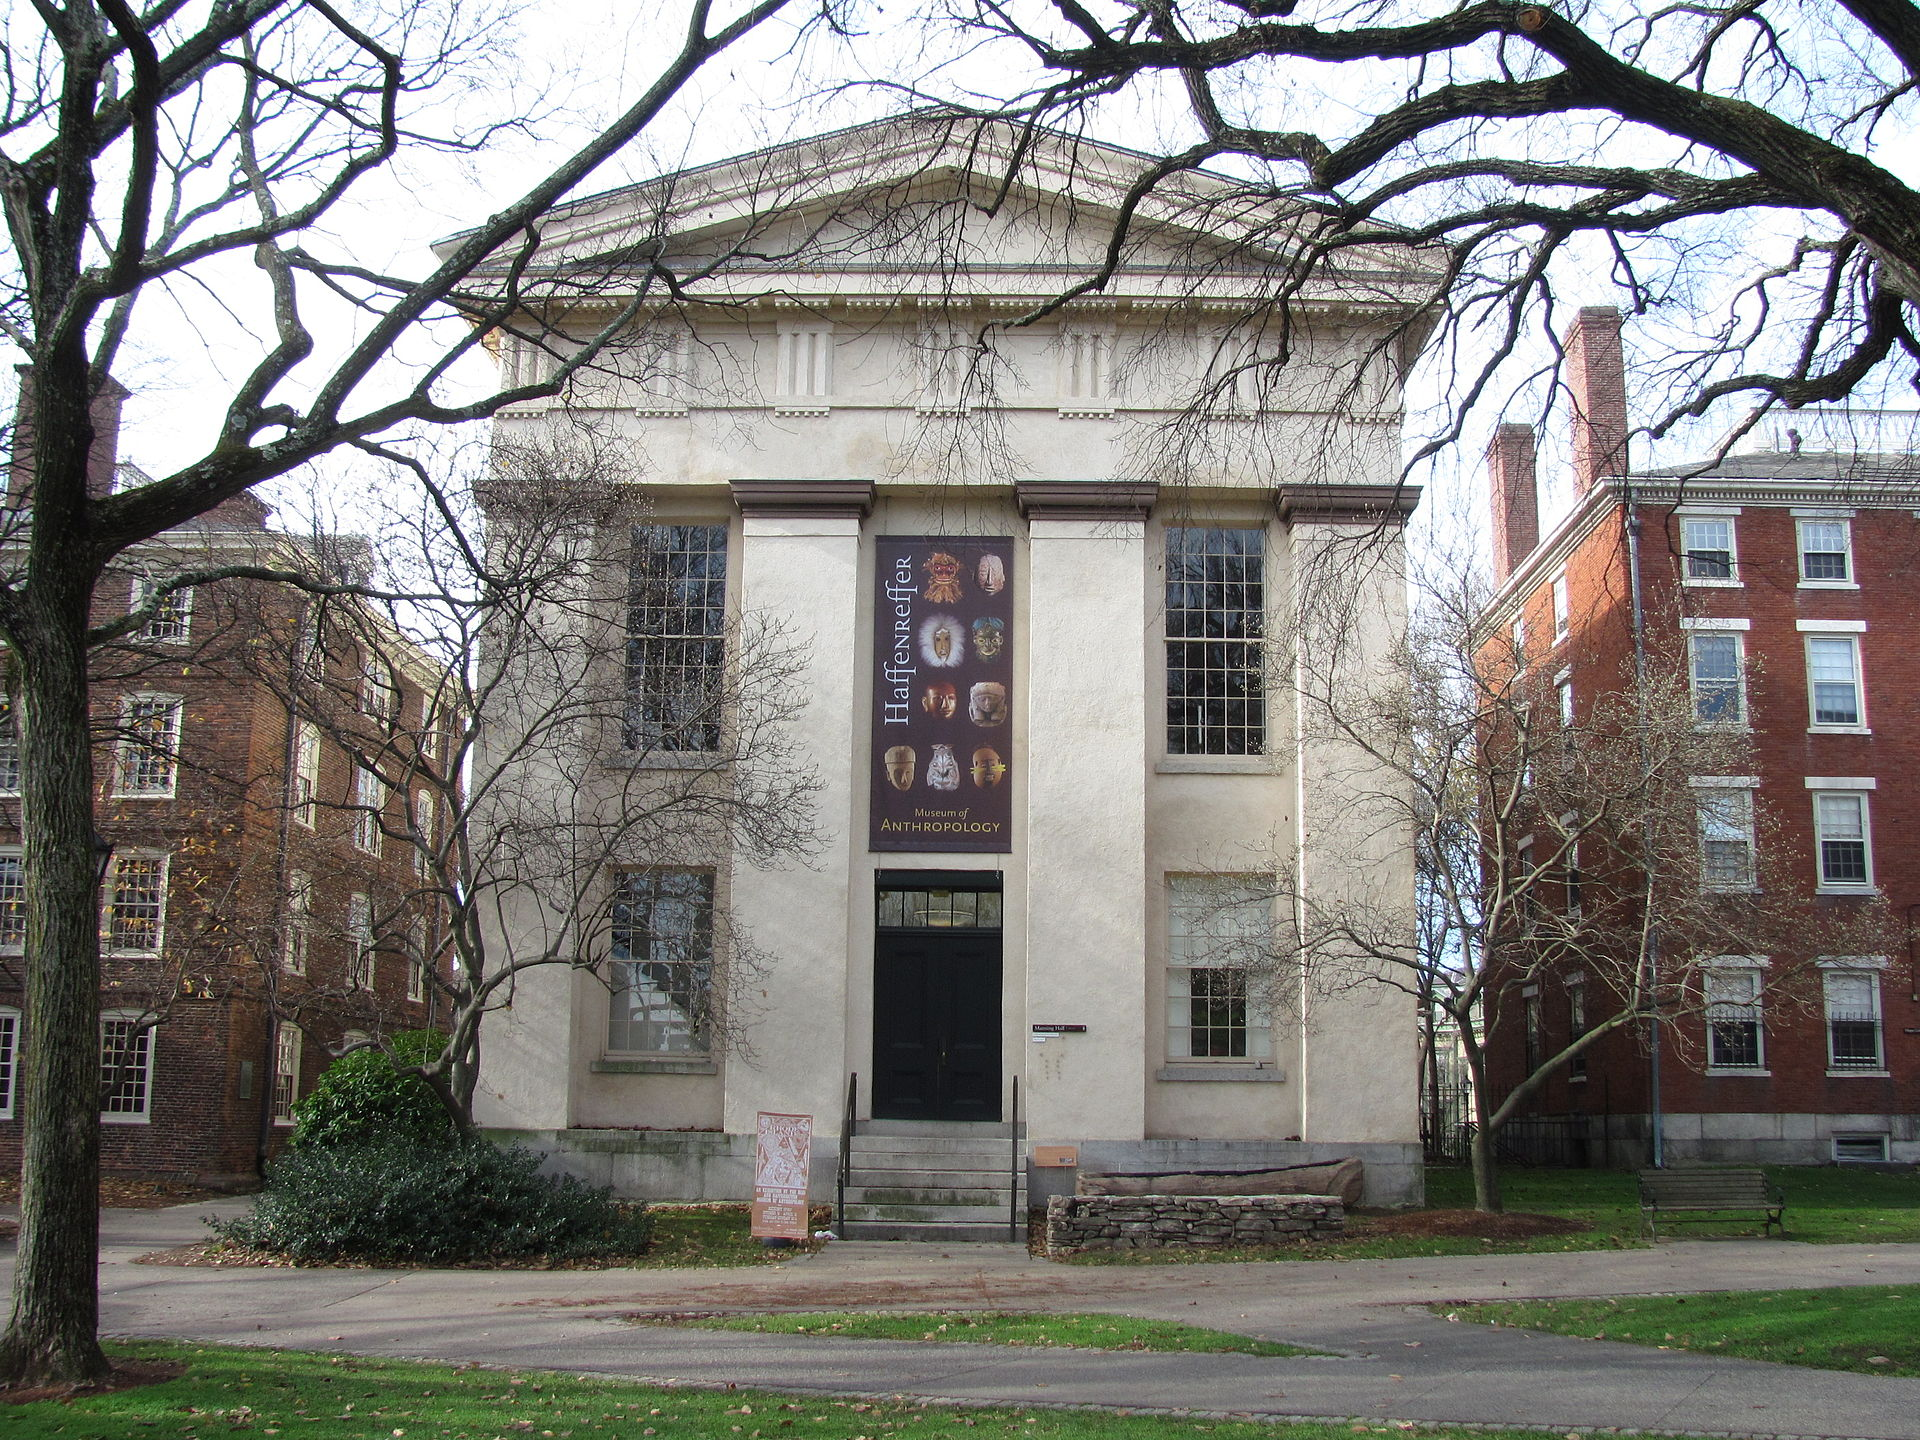 The Haffenreffer Museum of Anthropology's exhibitions are located at Manning Hall on the Brown University campus in Providence, RI.